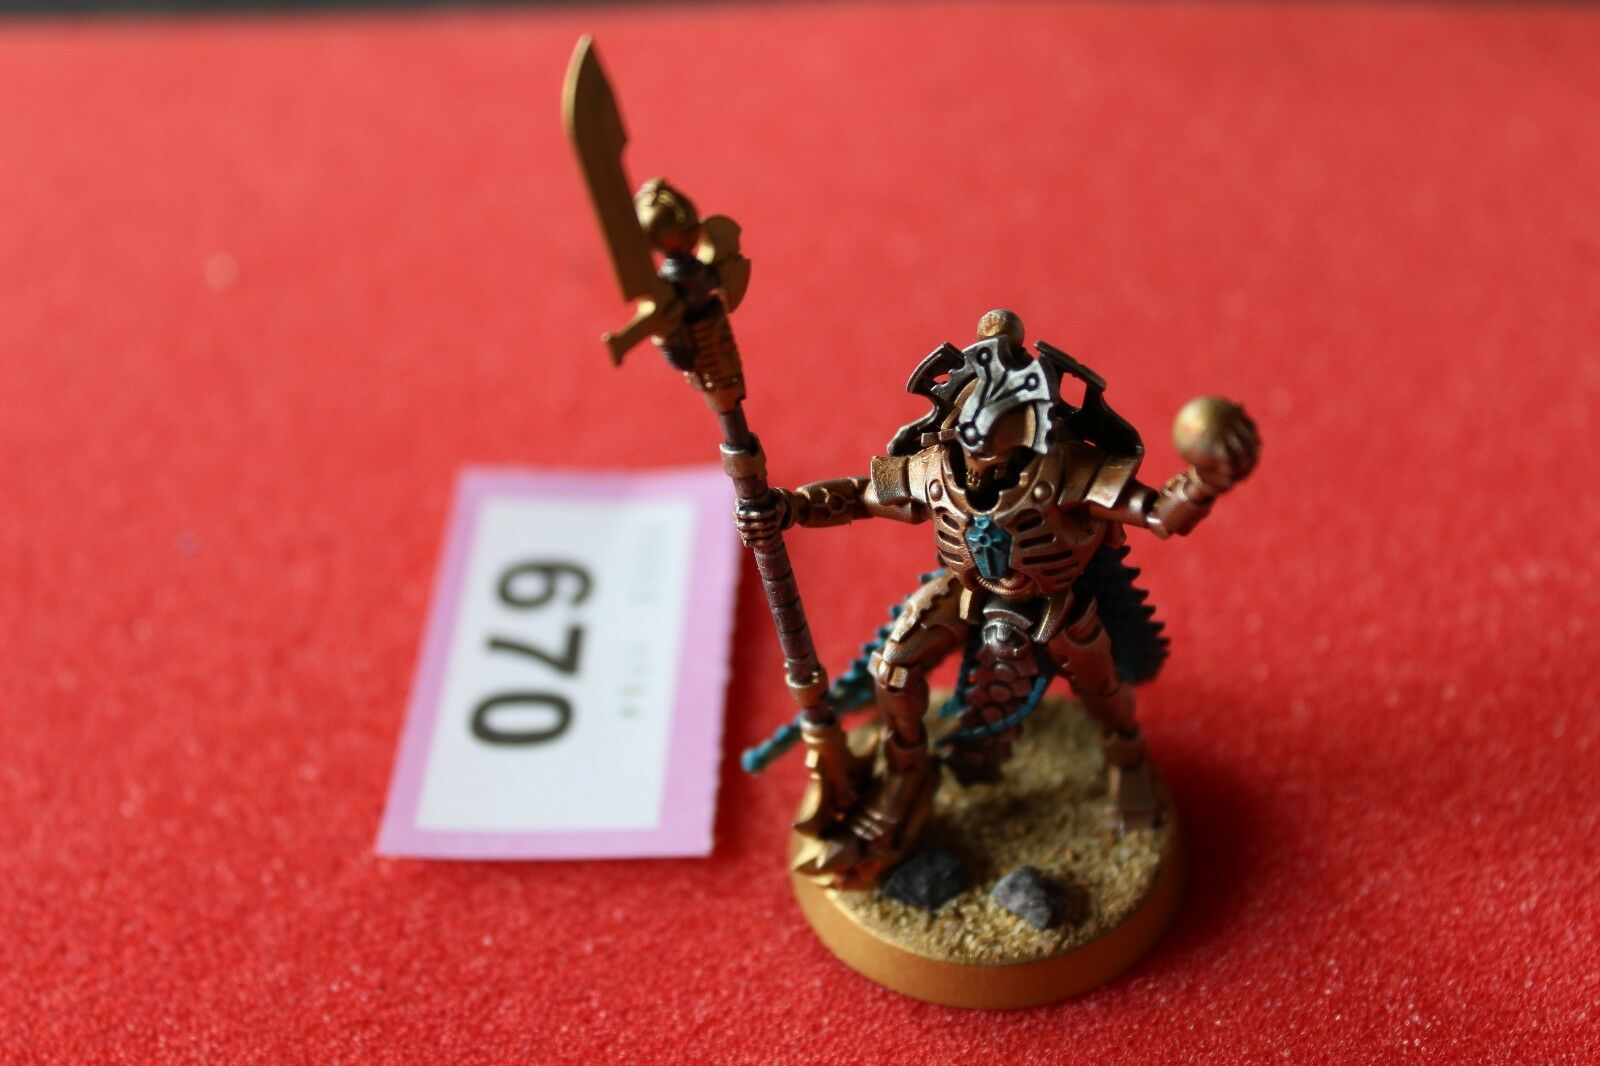 Games Workshop Warhammer 40k Necron Necron Overlord Well Painted Necrons Army B2